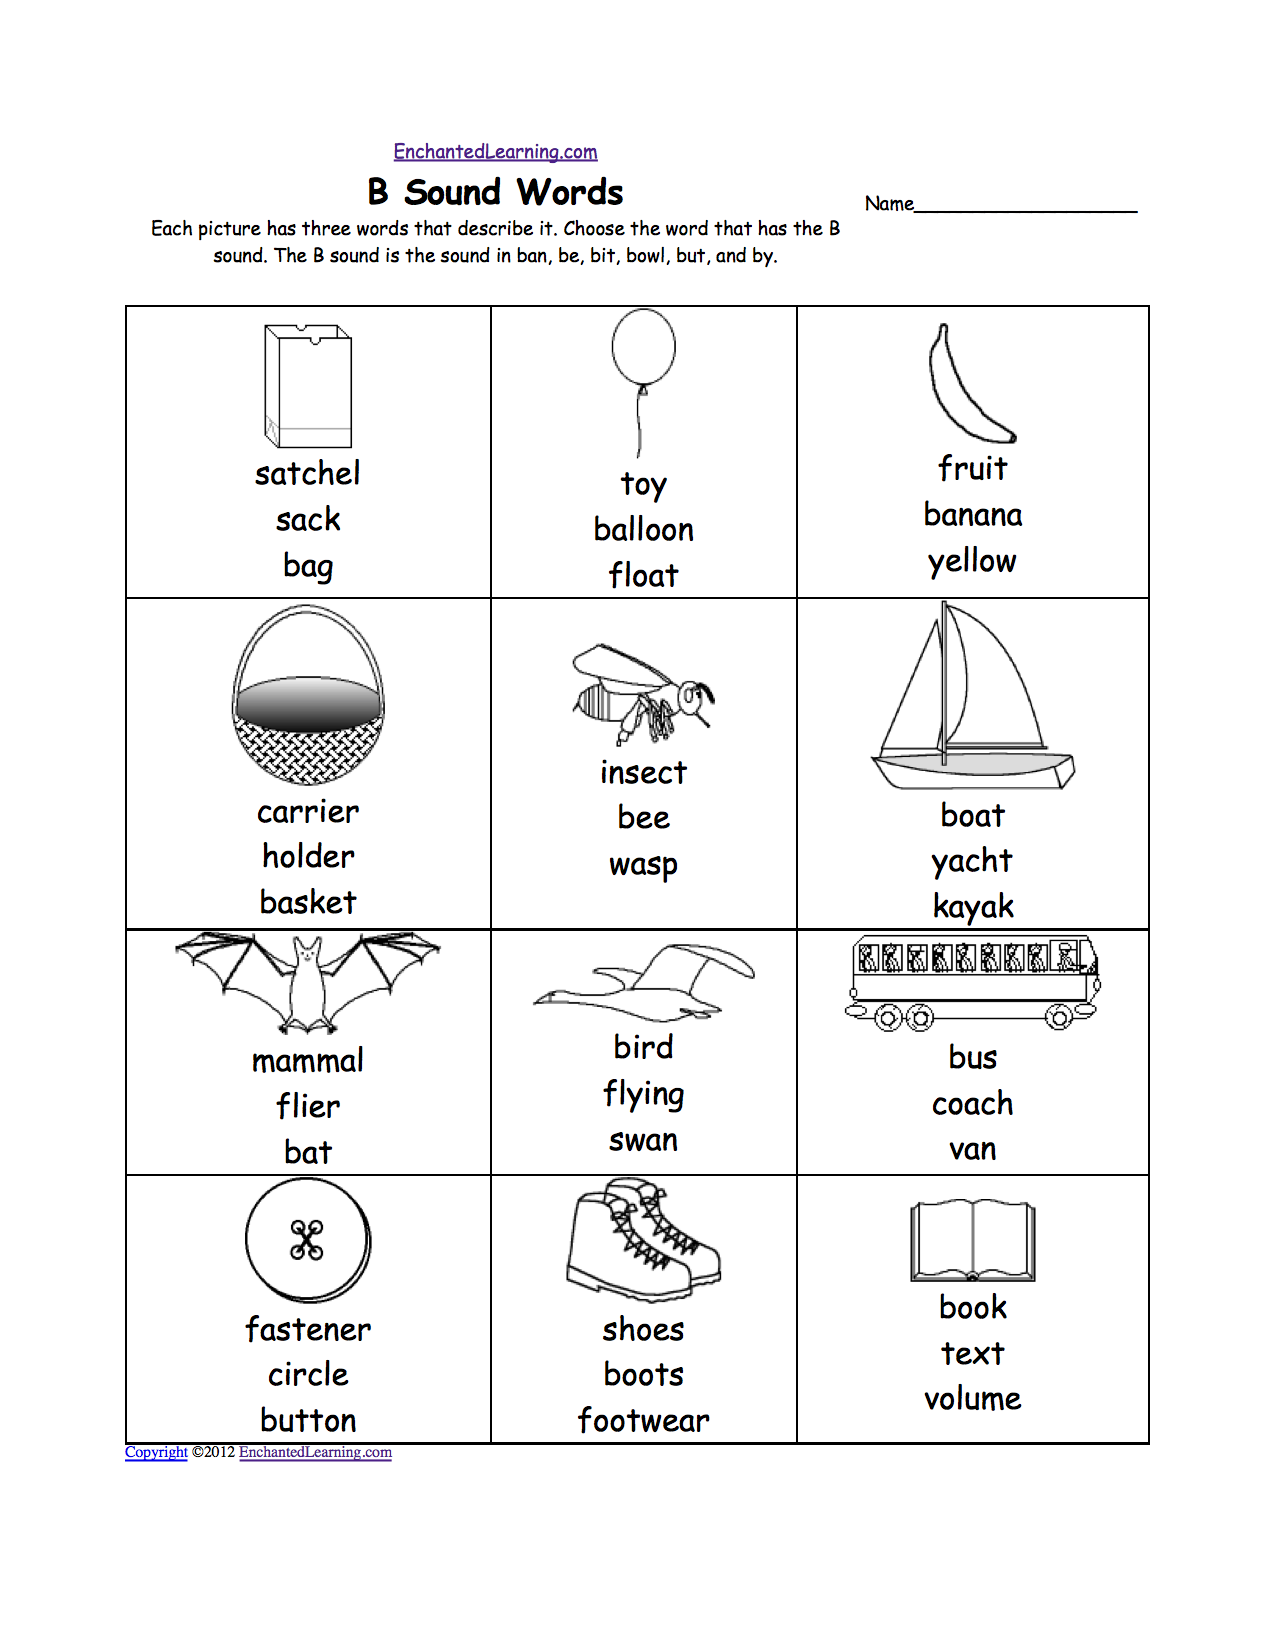 Aldiablosus  Ravishing Phonics Worksheets Multiple Choice Worksheets To Print  With Goodlooking Quotbquot Sound Phonics Worksheet Multiple Choice Each Picture Has Three Words That Describe It Choose The Word That Has A Quotbquot Sound The Quotbquot Sound Is The Sound  With Lovely Separation Techniques Worksheet Also Free Multiplication Worksheets For Th Grade In Addition Simple Binary Ionic Compounds Worksheet Answers And The Tortoise And The Hare Math Worksheet As Well As Worksheet On Number  Additionally Sequence And Series Worksheet With Answers From Enchantedlearningcom With Aldiablosus  Goodlooking Phonics Worksheets Multiple Choice Worksheets To Print  With Lovely Quotbquot Sound Phonics Worksheet Multiple Choice Each Picture Has Three Words That Describe It Choose The Word That Has A Quotbquot Sound The Quotbquot Sound Is The Sound  And Ravishing Separation Techniques Worksheet Also Free Multiplication Worksheets For Th Grade In Addition Simple Binary Ionic Compounds Worksheet Answers From Enchantedlearningcom